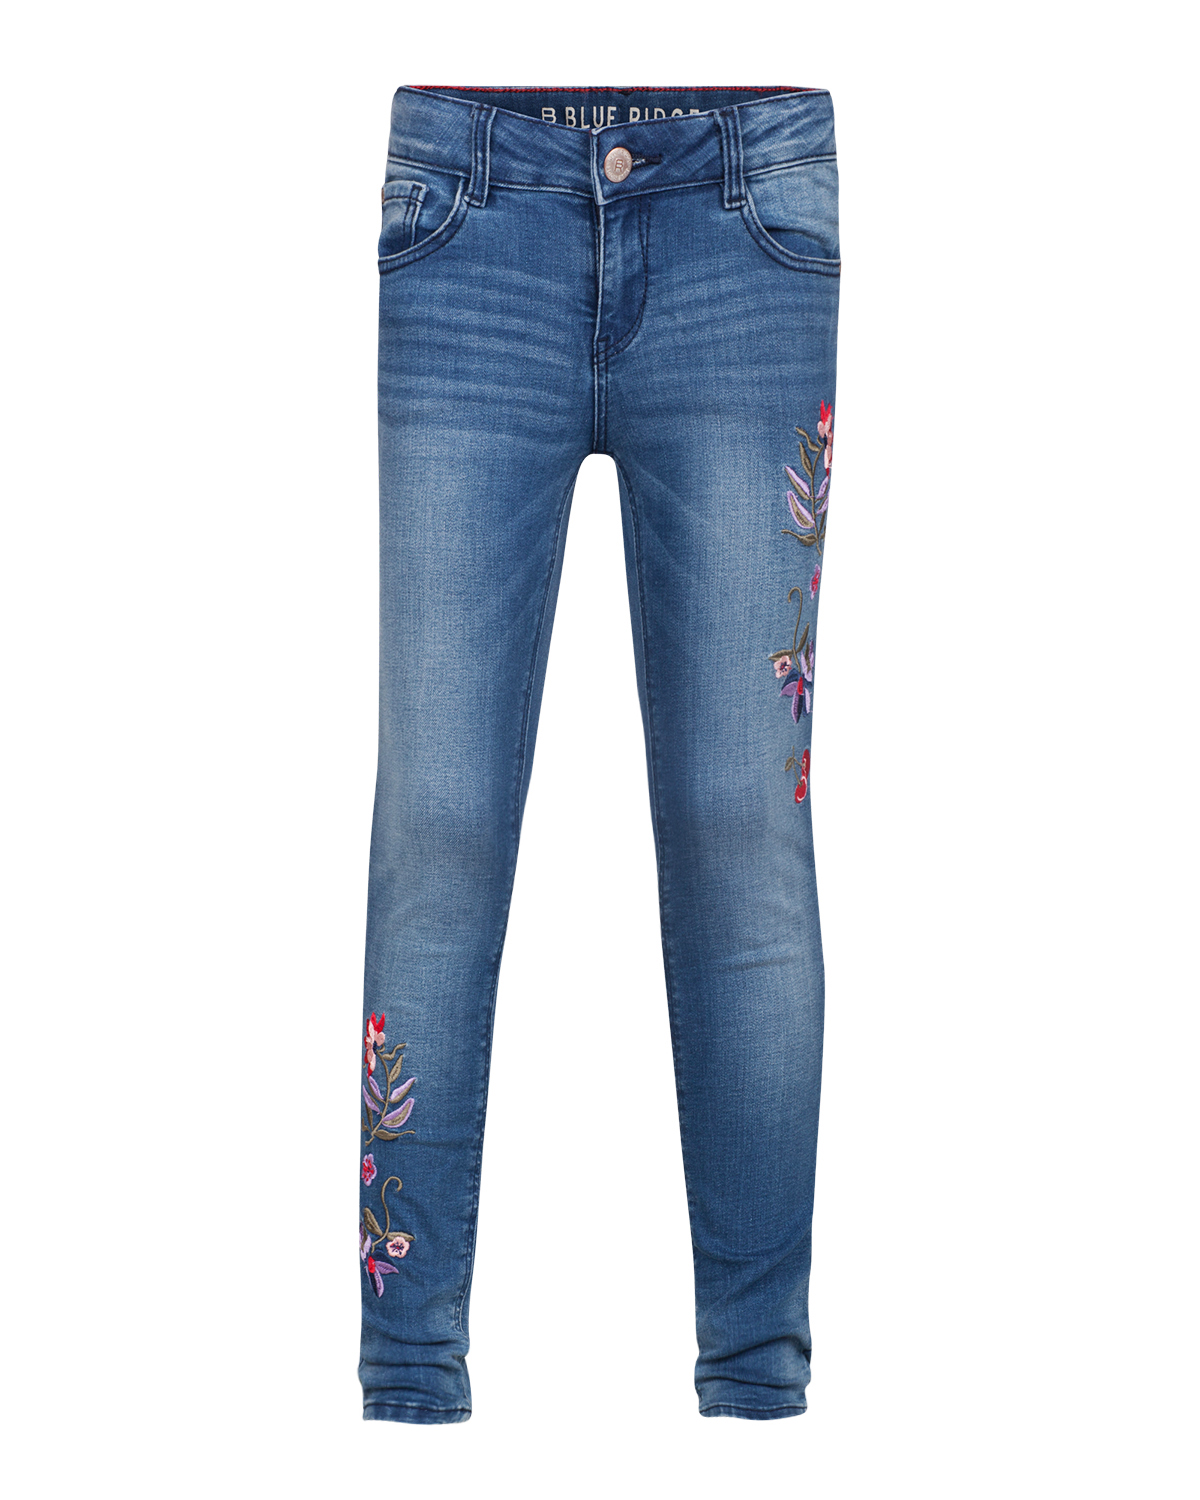 Meisjes super skinny super stretch embroidery jeans